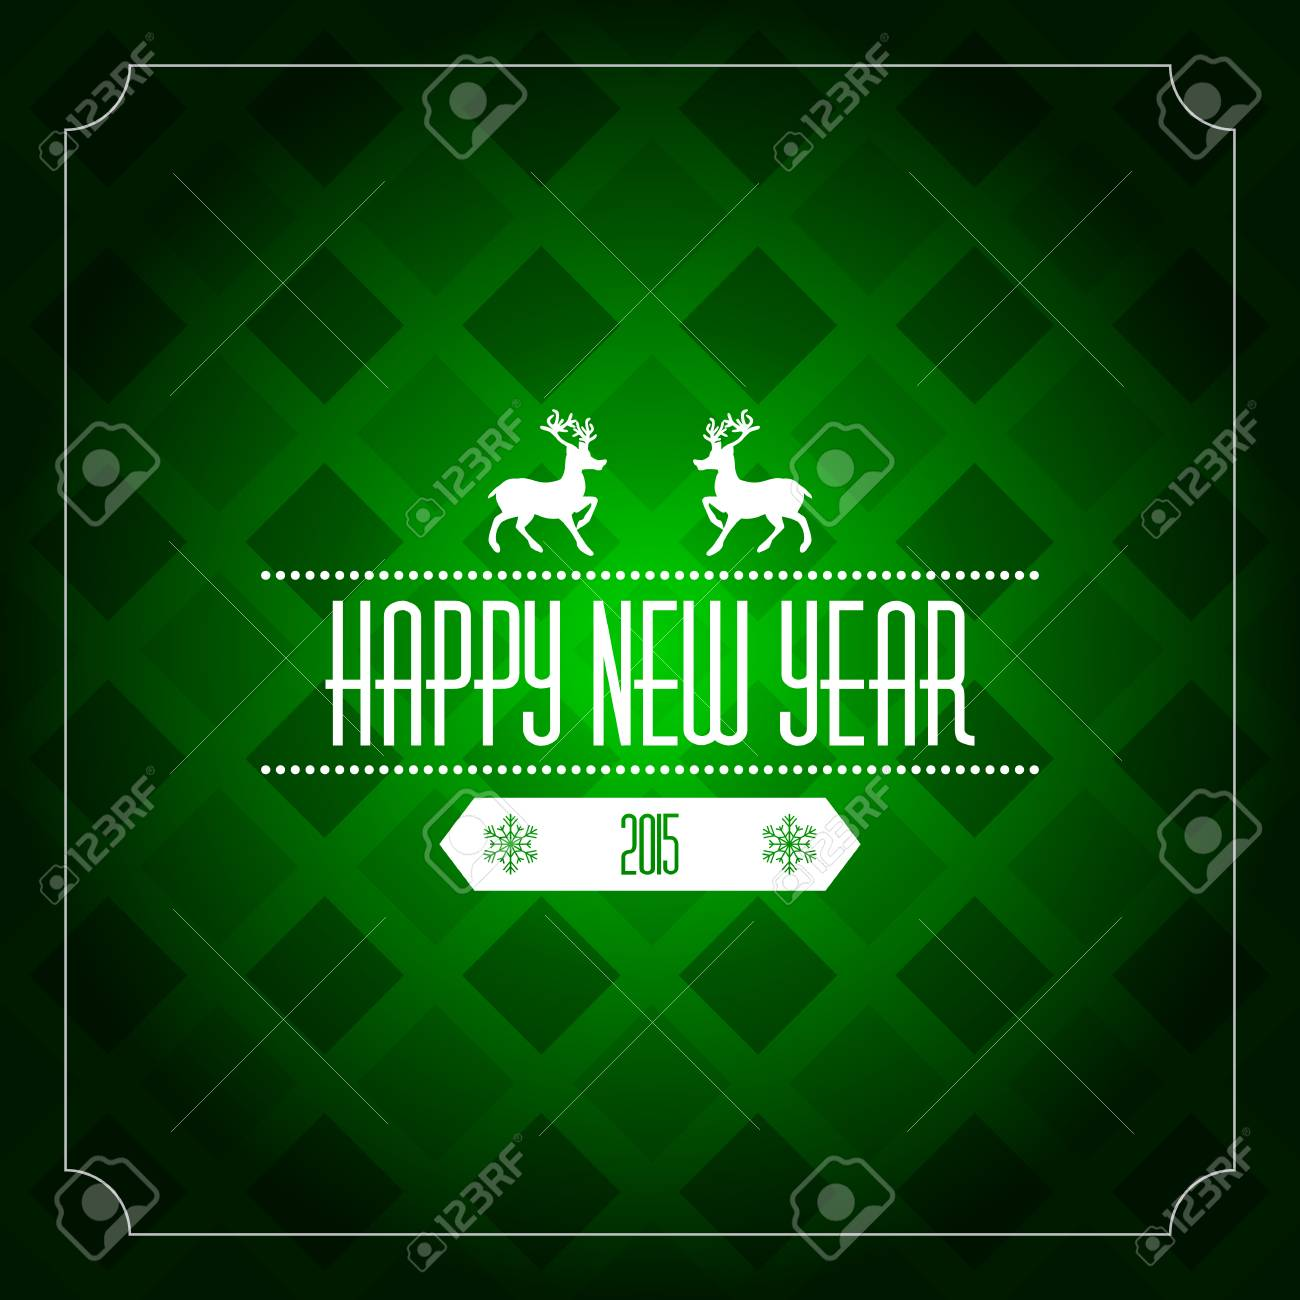 Happy New Year 2015 Greeting Card Template Green Pattern Royalty